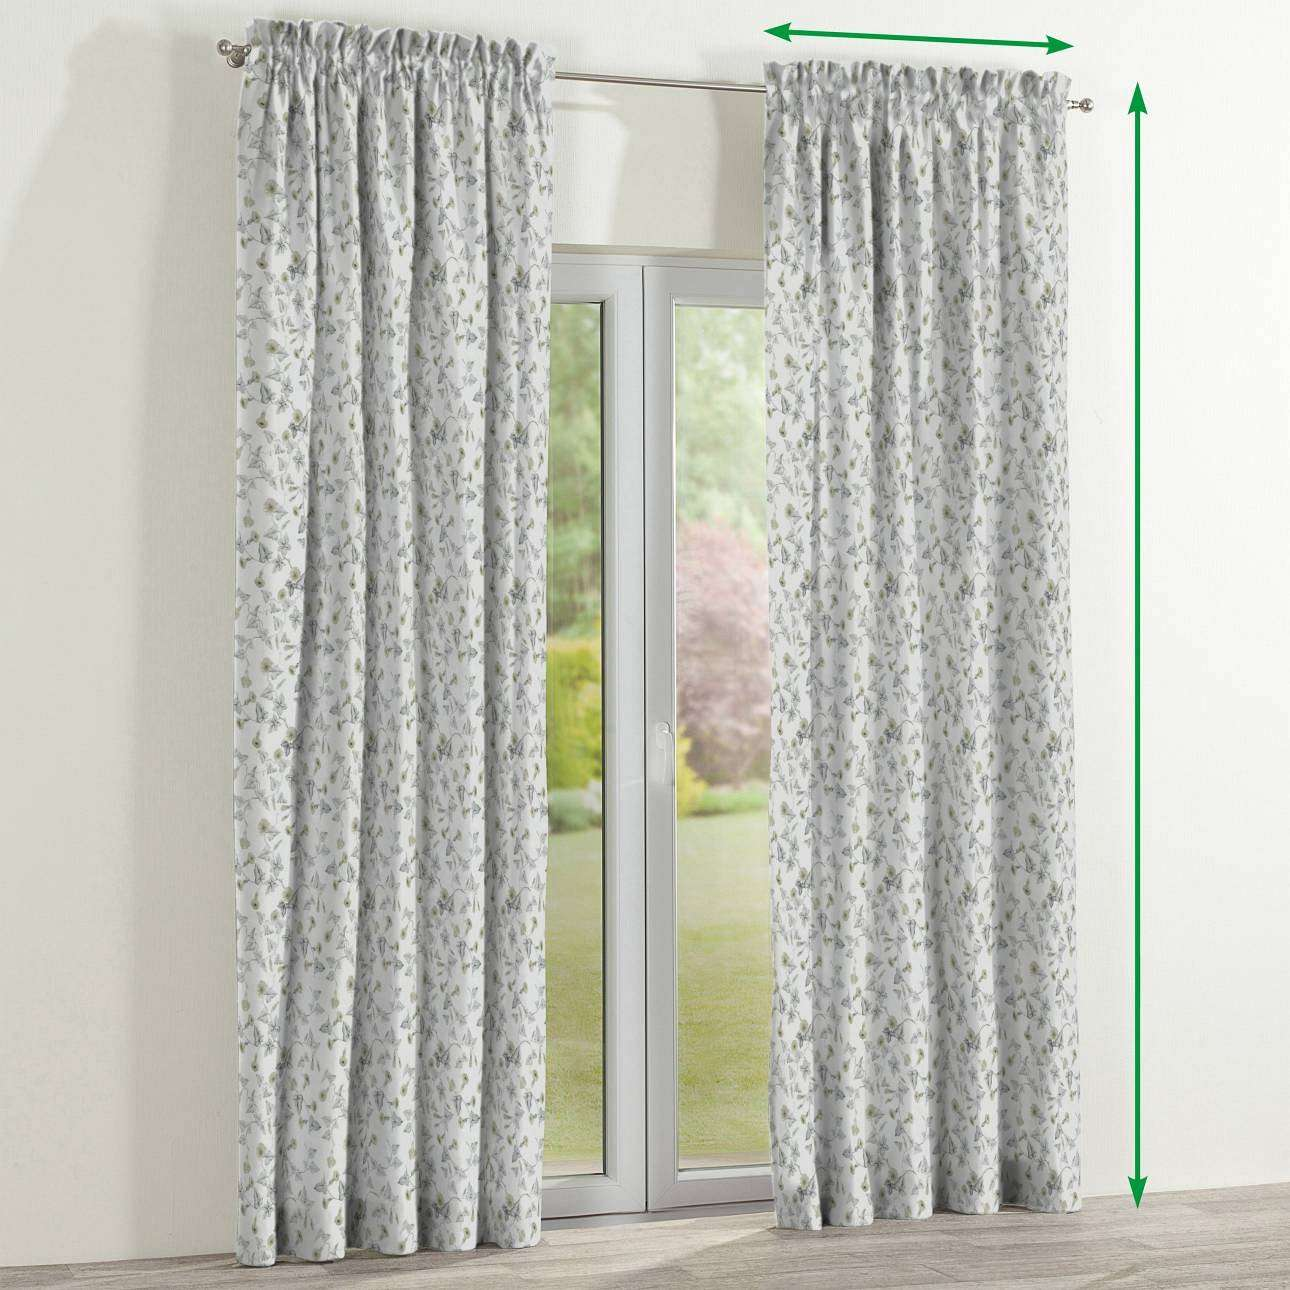 Slot and frill lined curtains in collection Mirella, fabric: 140-42